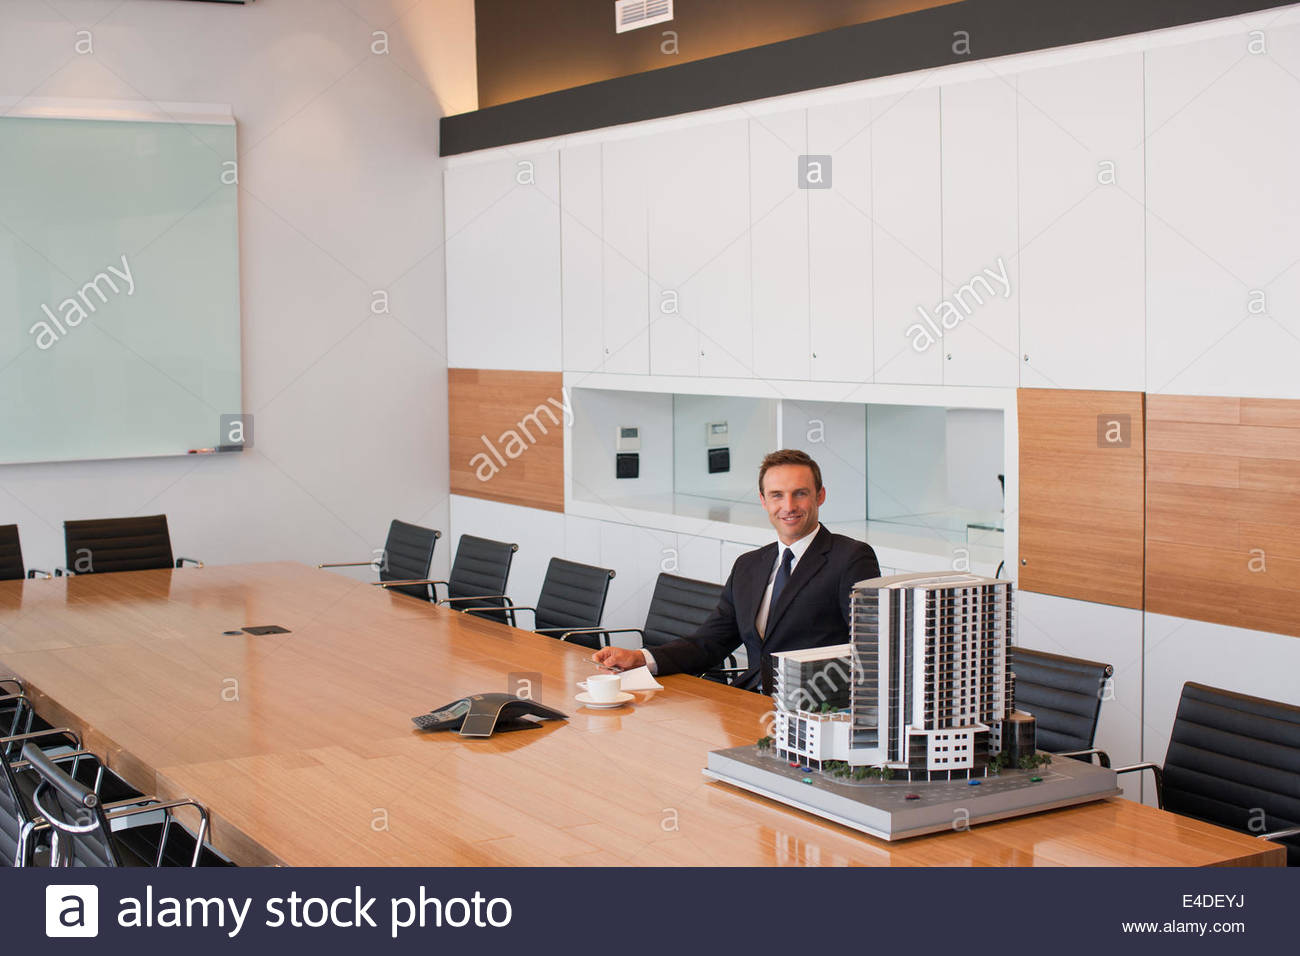 Businessman in conference room with building model Stock Photo